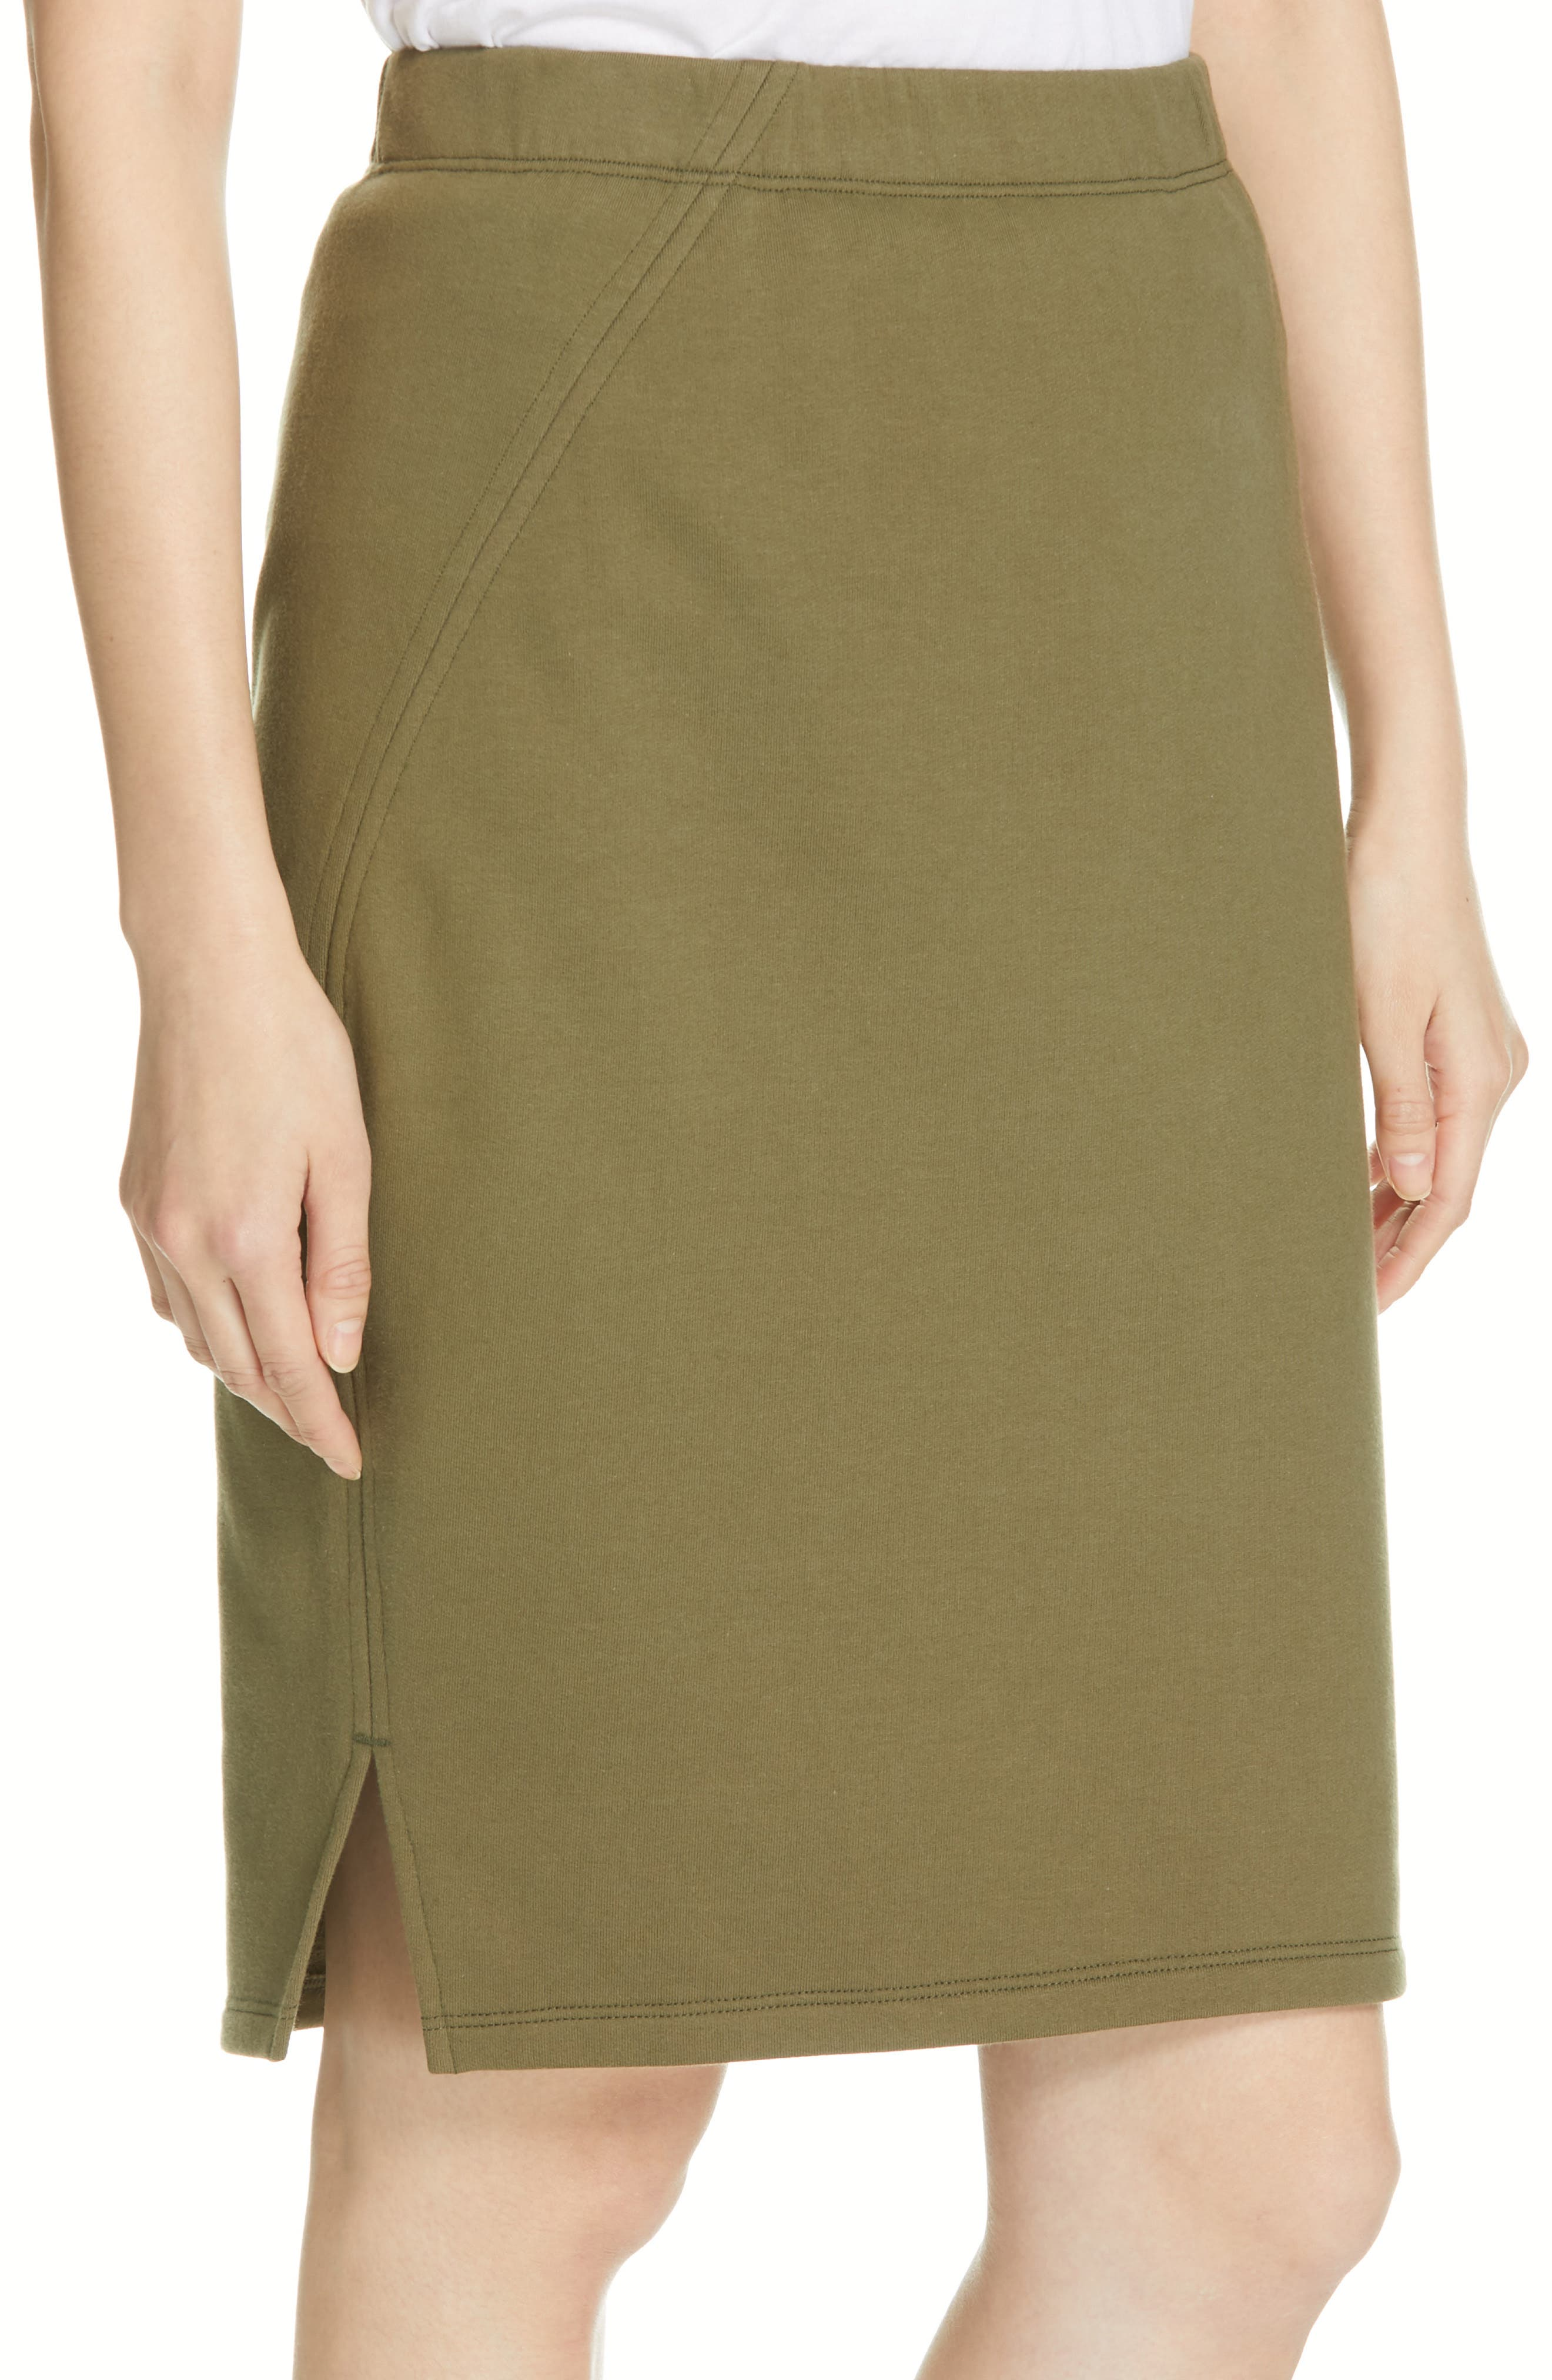 EILEEN FISHER, Organic Cotton Pencil Skirt, Alternate thumbnail 4, color, OLIVE